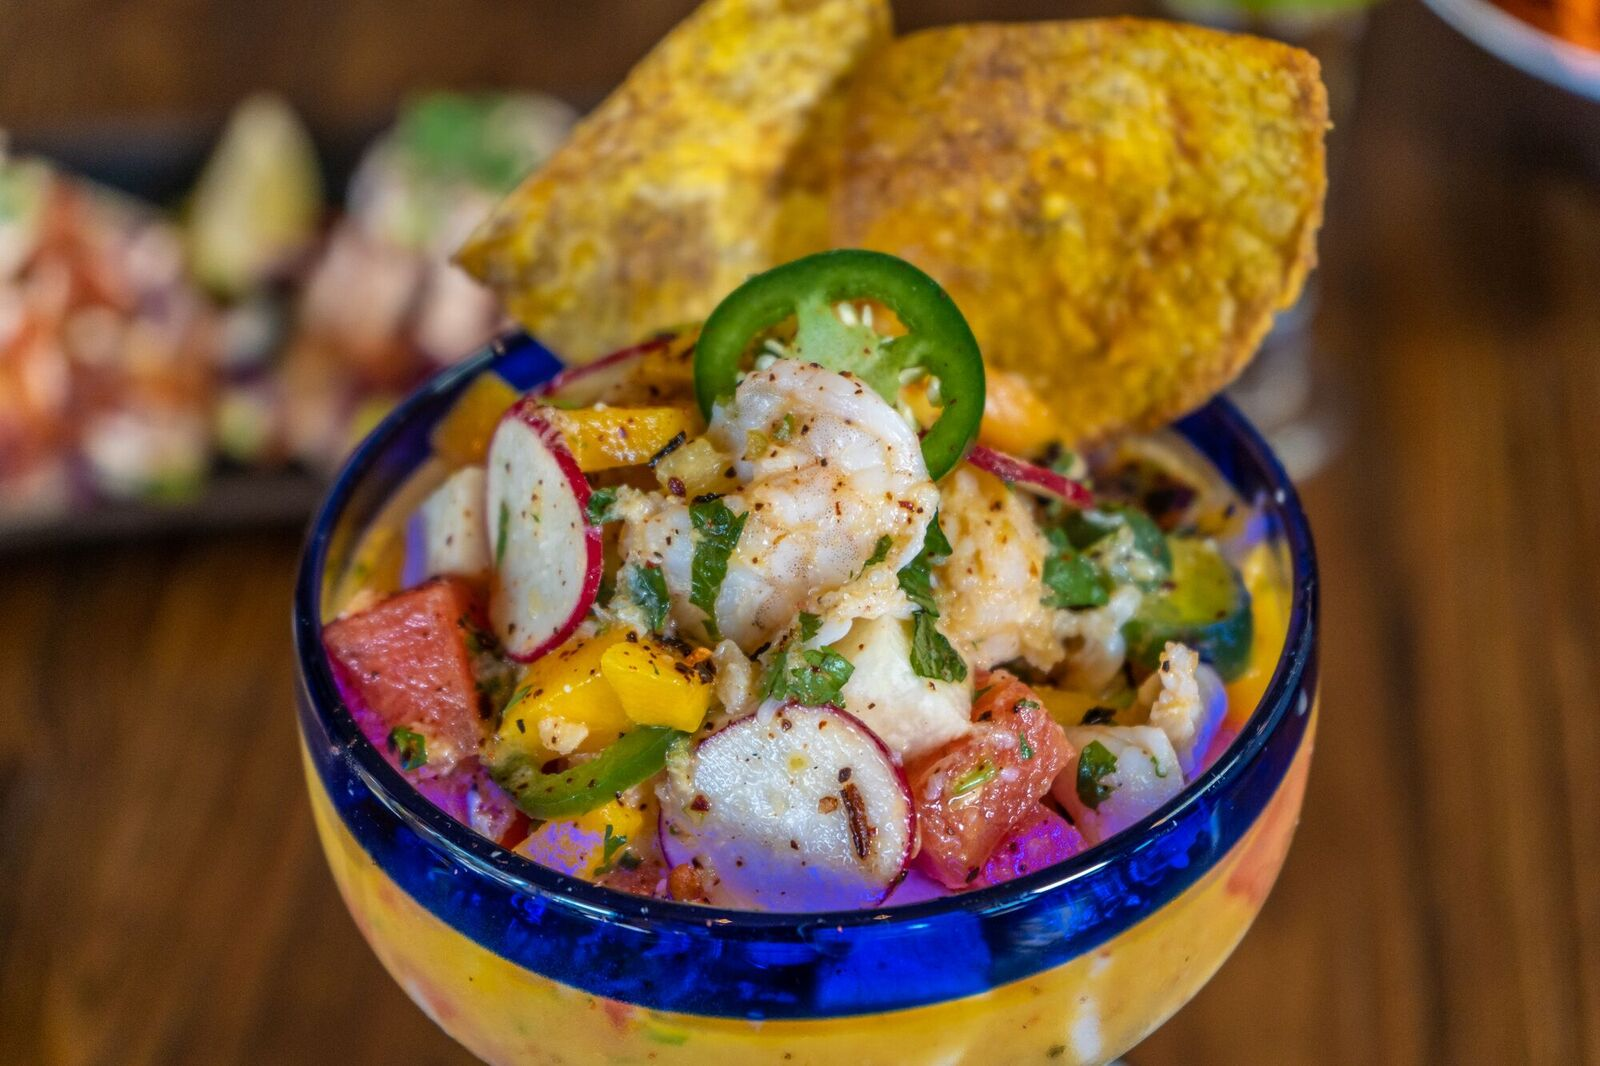 gulf grouper & shrimp cooked with fresh citrus juices, watermelon, mango, jalapeño, pineapple, radish, red onion, jicama & passion-fruit habanero-ginger sauce in a margarita glass